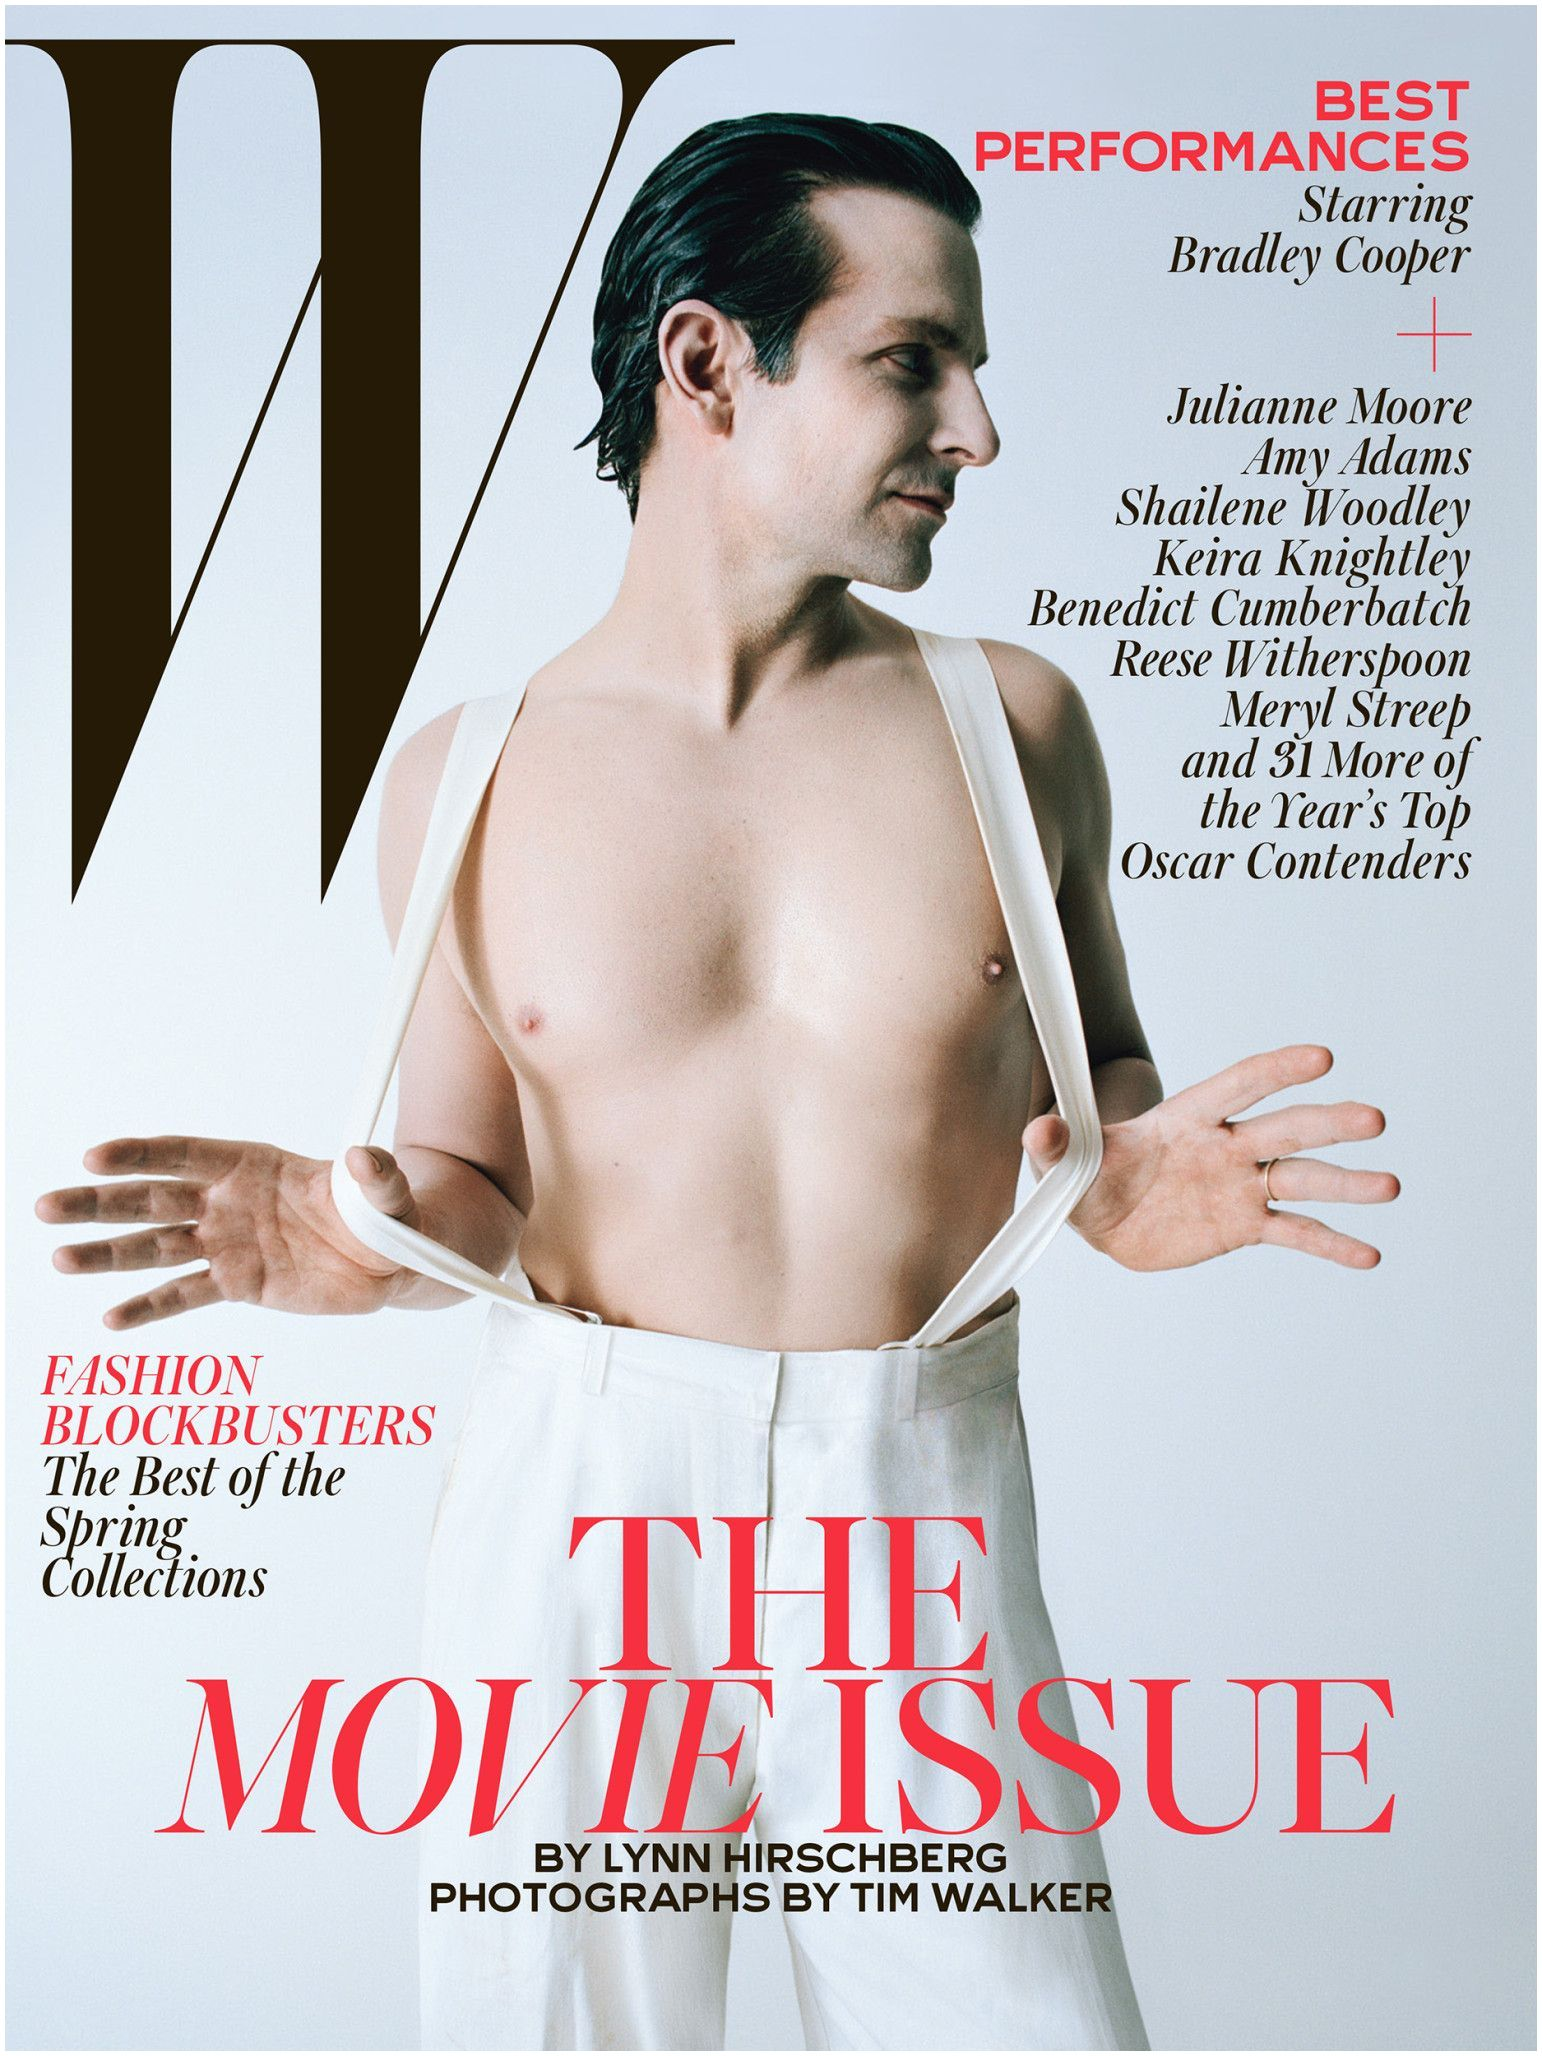 Best Performances February 2015 See All 7 W Magazine Covers Bradley Cooper Wmag